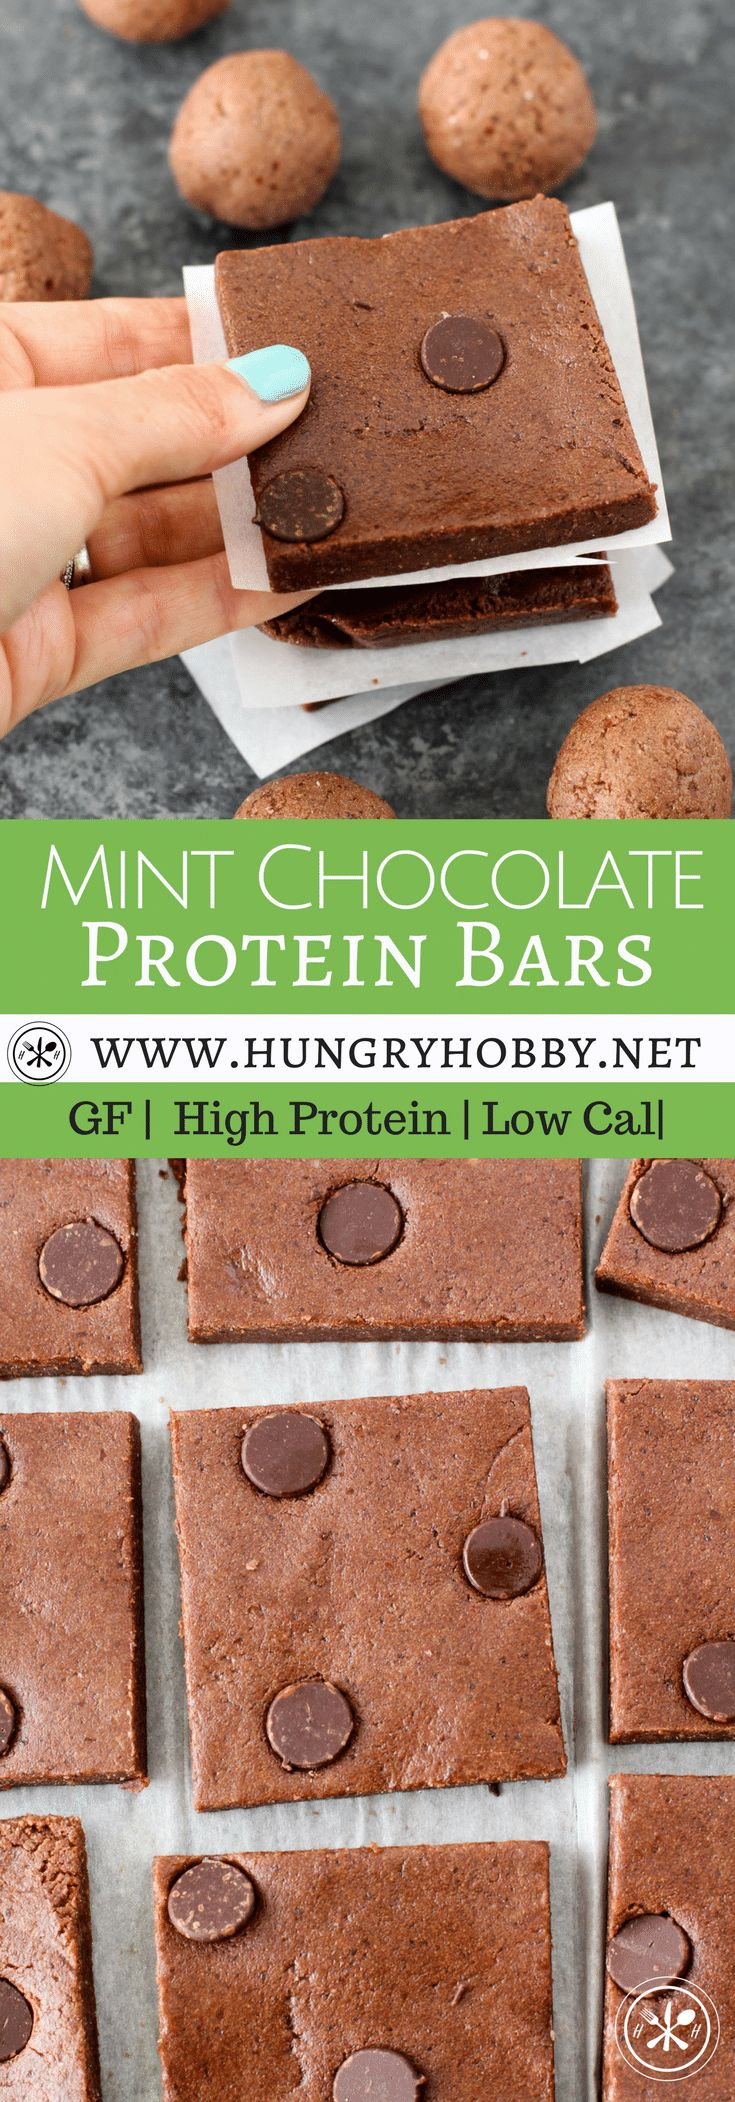 Mint Chocolate Protein Bars are delicious make at home protein bars with 14 grams of protein that come together in less than 5 minutes!